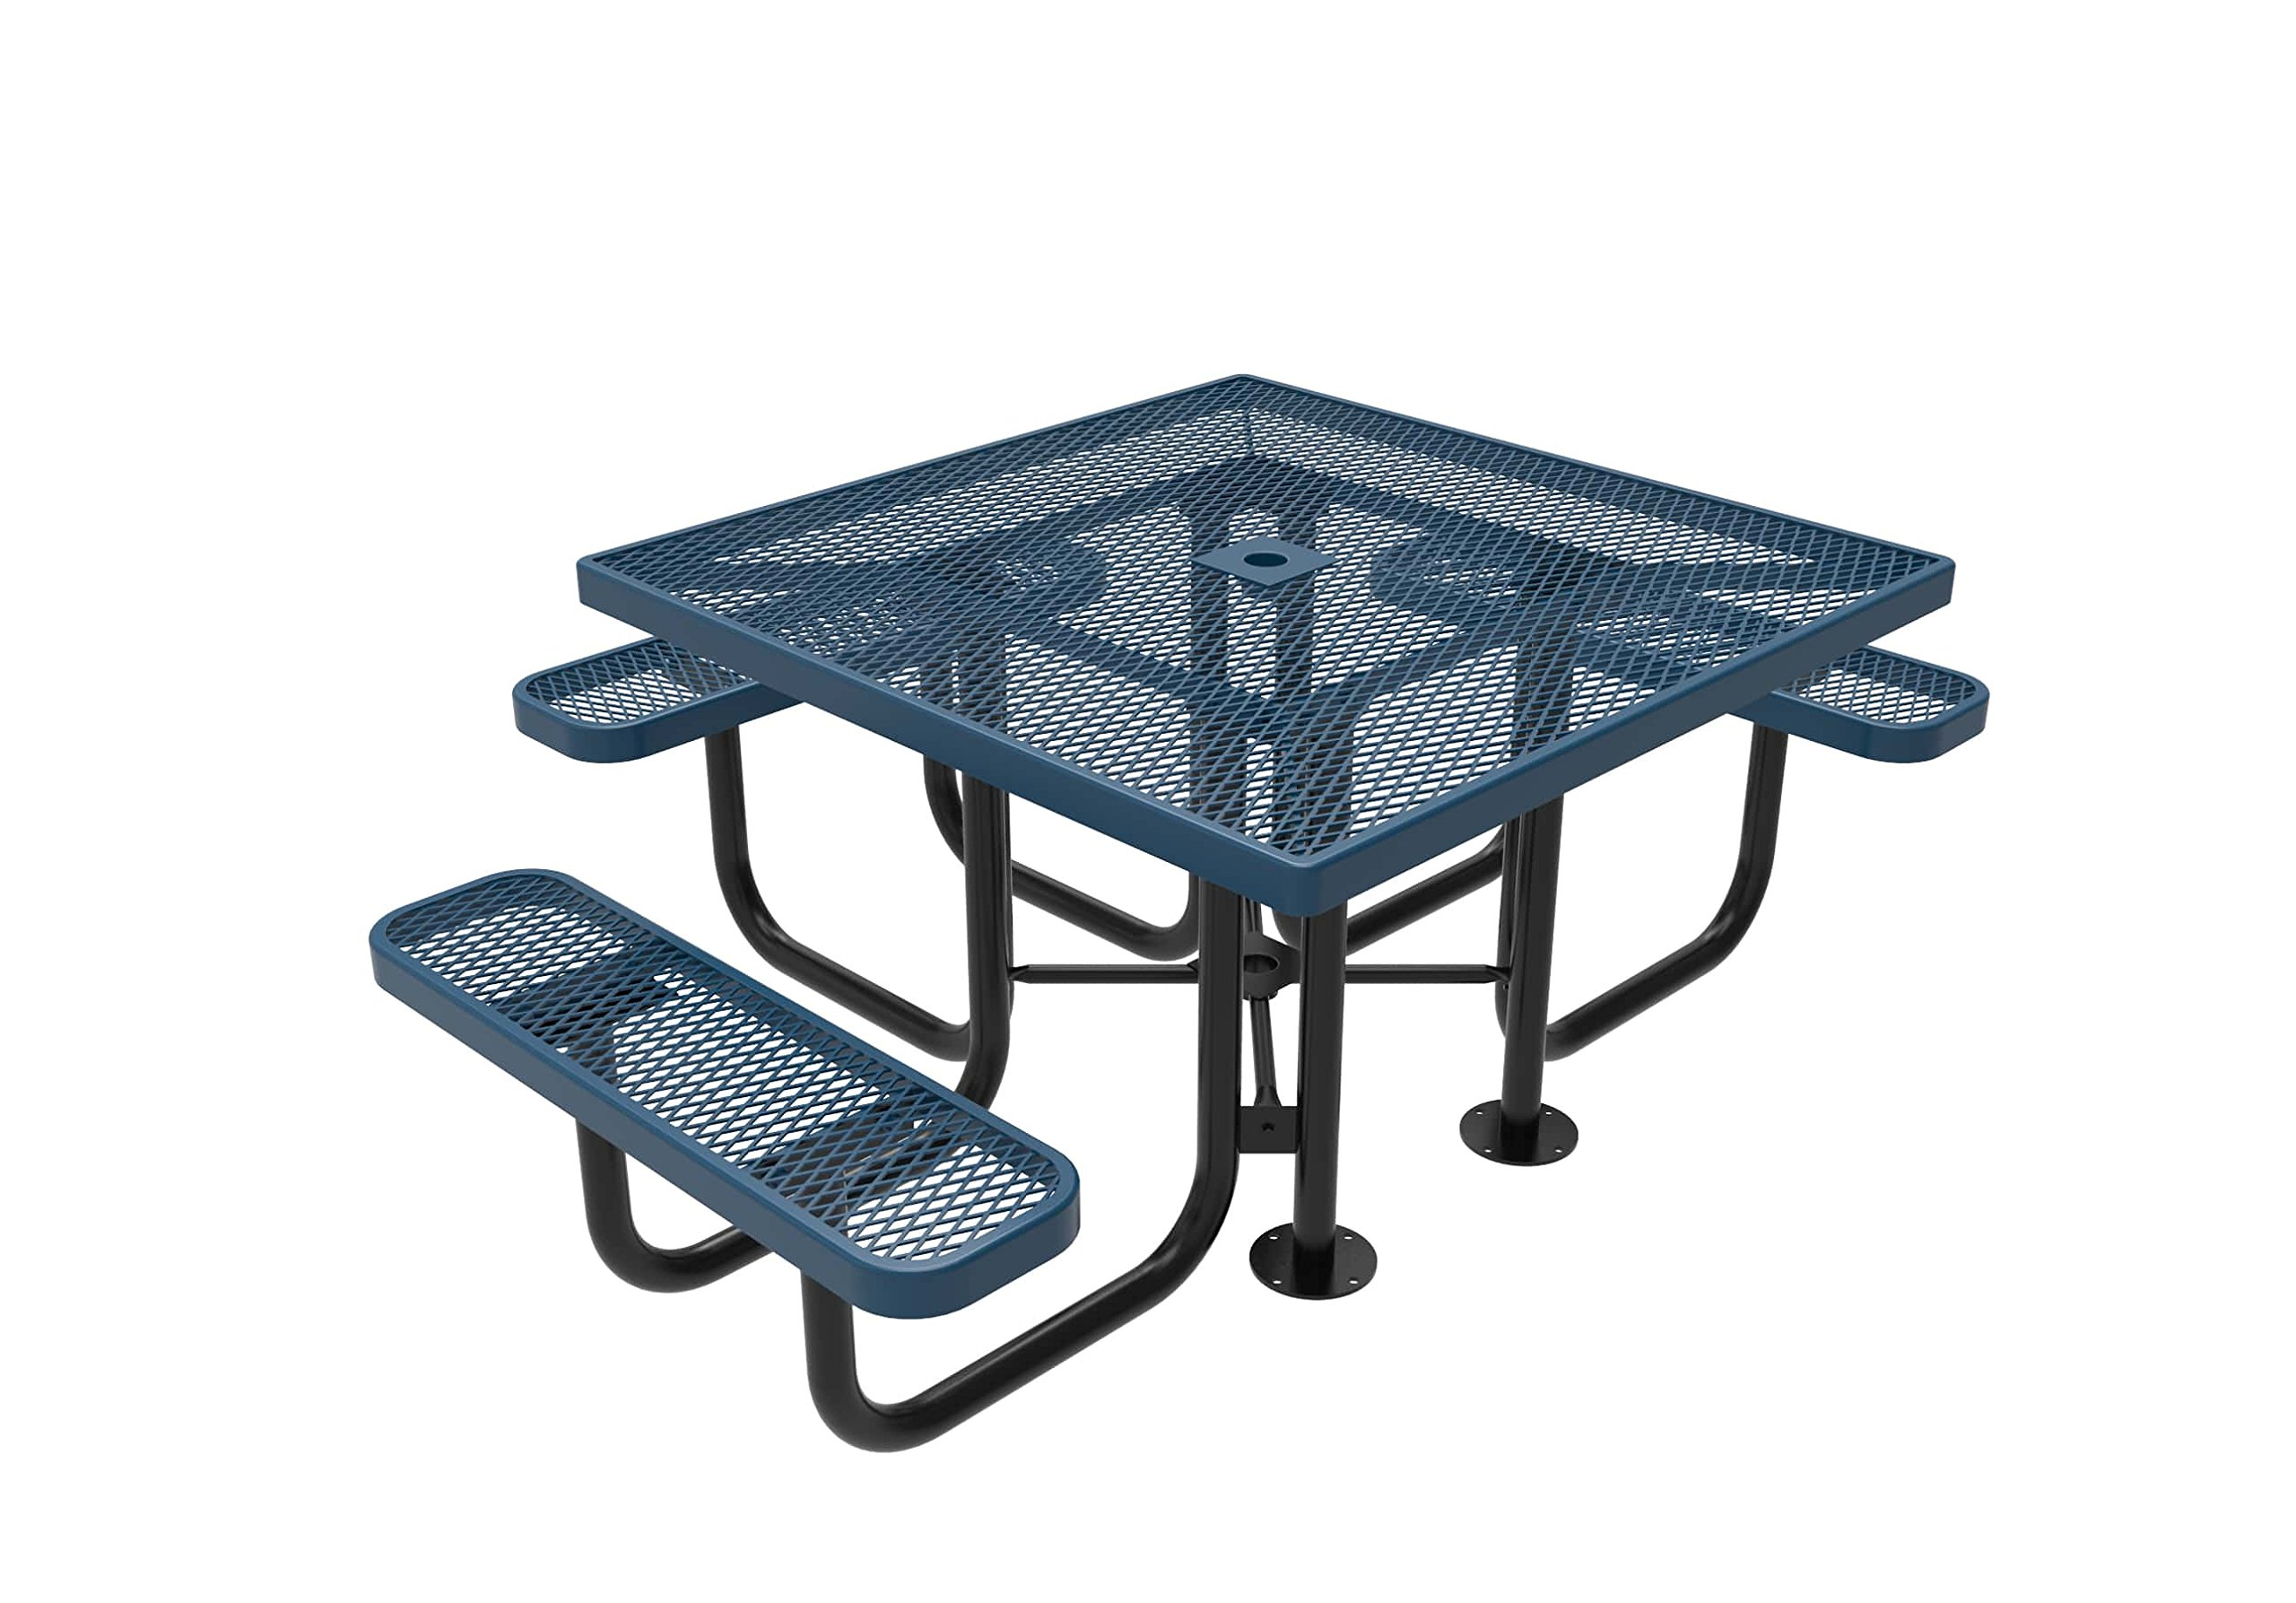 CoatedOutdoorFurniture TSQH-LBL Top Square Portable Picnic Table, Handicap Accessible, Light Blue by CoatedOutdoorFurniture